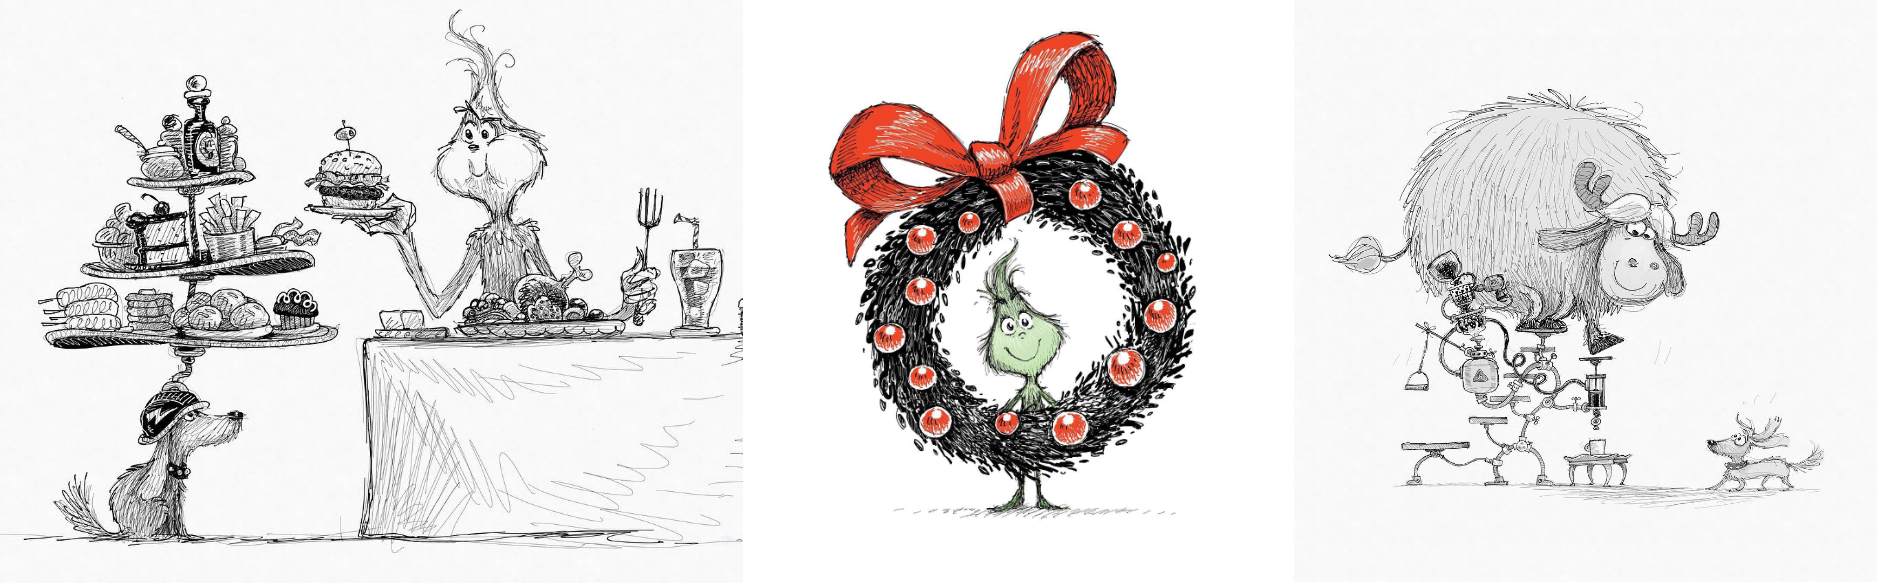 Concept art from The Grinch posted by Yarrow Cheney (instagram.com/yarrowcheney) on Instagram.